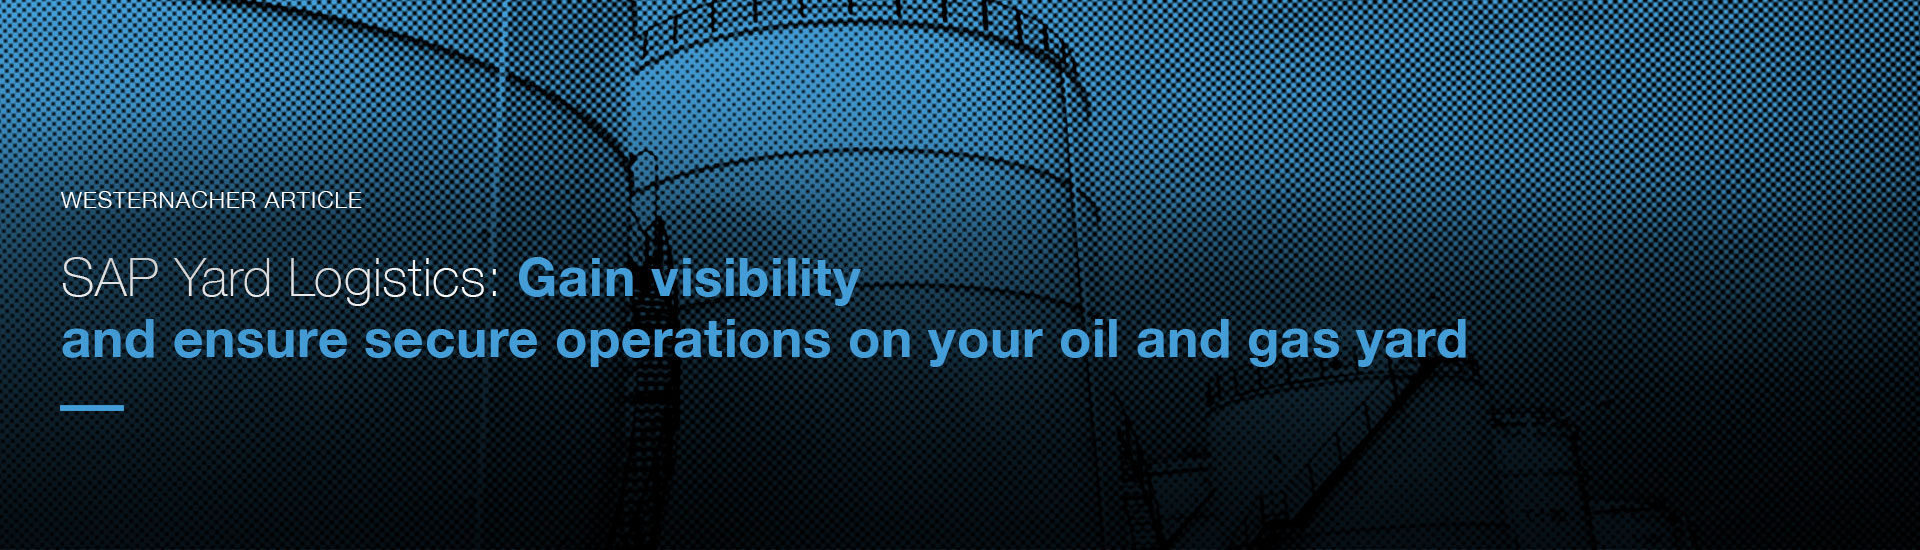 Gain visibility and ensure secure operations on your oil and gas yard | westernacher-consulting.com